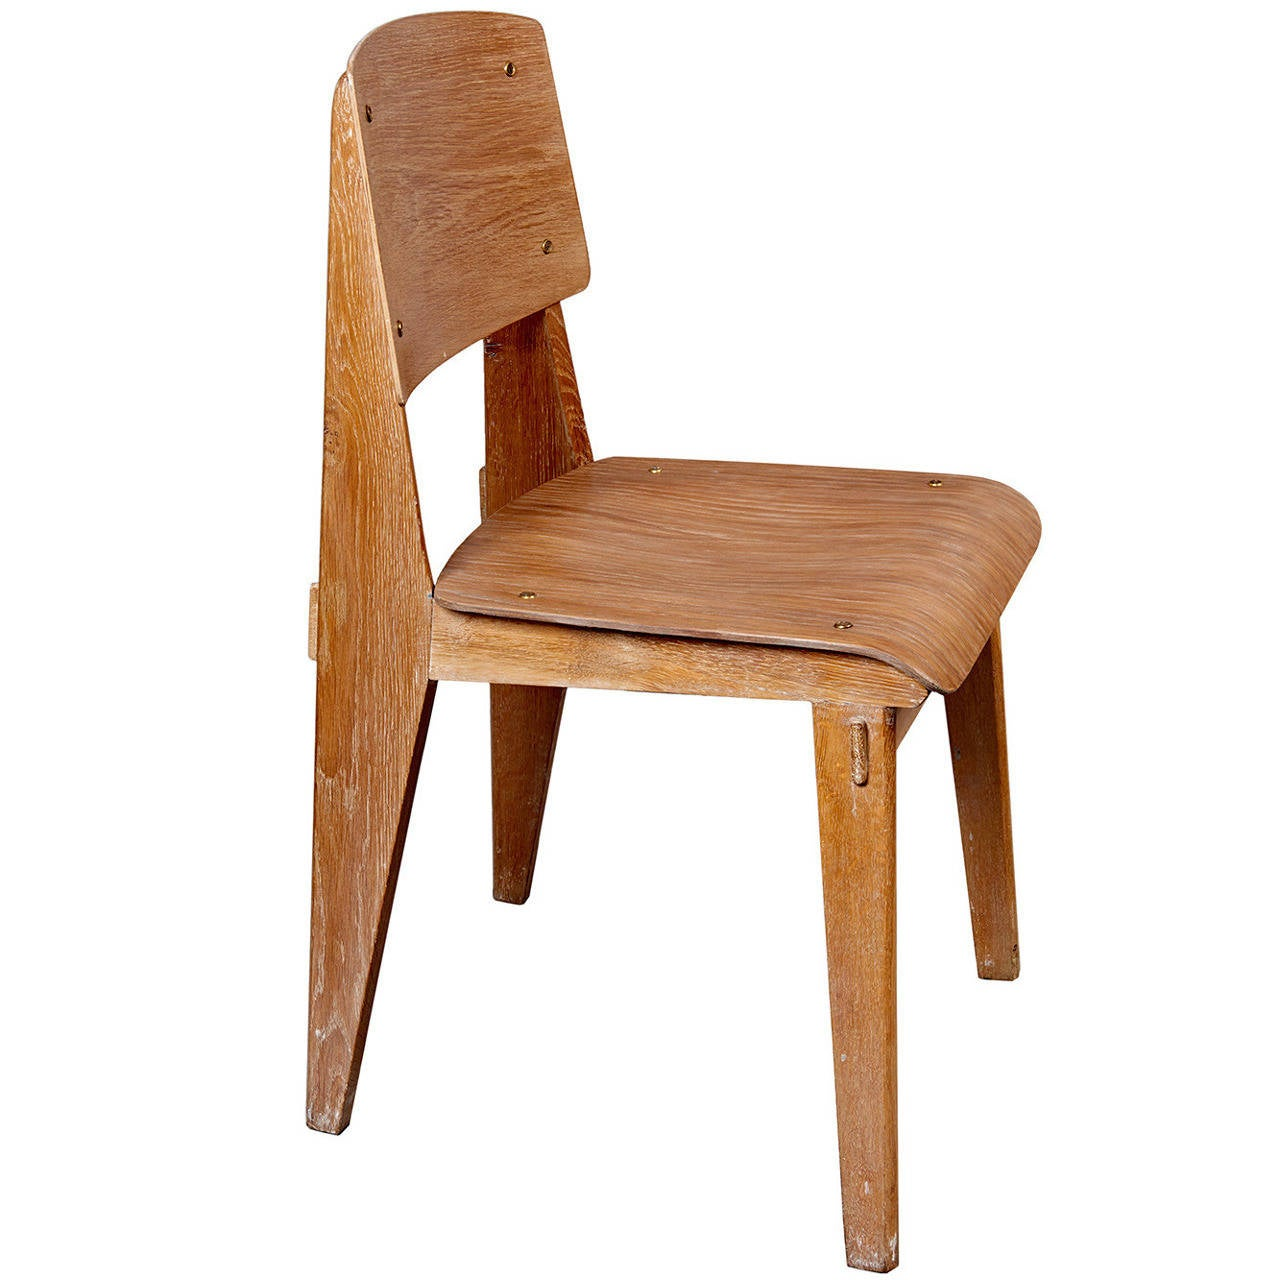 Standard chair tout bois by jean prouv at 1stdibs - Chaise de jean prouve ...